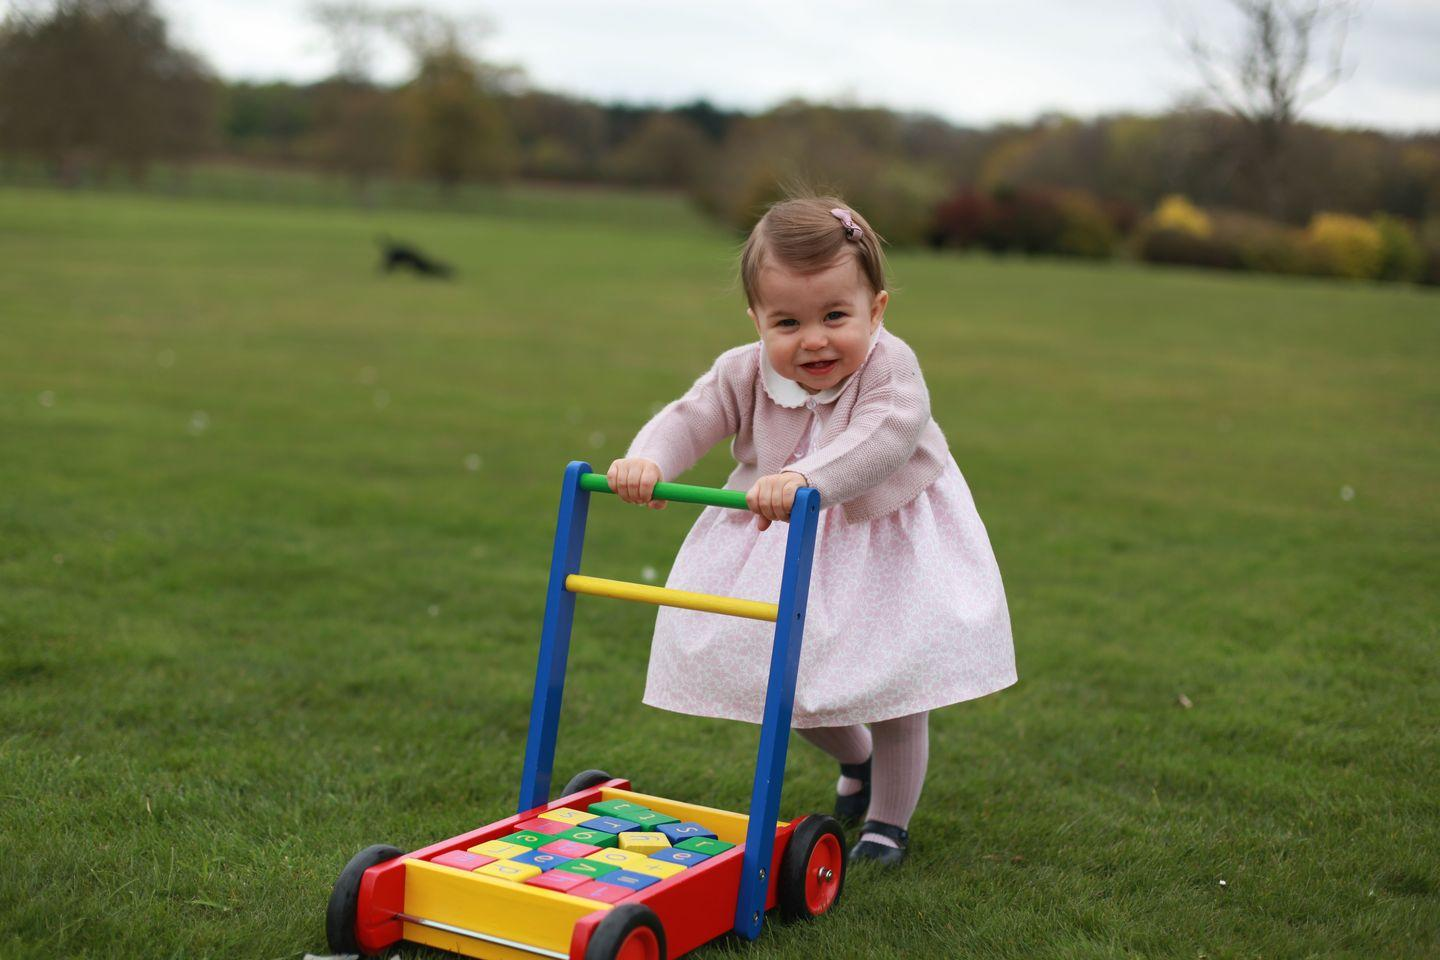 """<p>Kensington Palace released a series of photos taken by the Duchess of Cambridge in honor of Charlotte's first birthday. The candids marked the beginnings of the princess's reign as <a href=""""https://www.townandcountrymag.com/society/tradition/a6055/princess-charlotte-baby-clothing-sales/"""" target=""""_blank"""">a style icon in her own right</a>.</p>"""